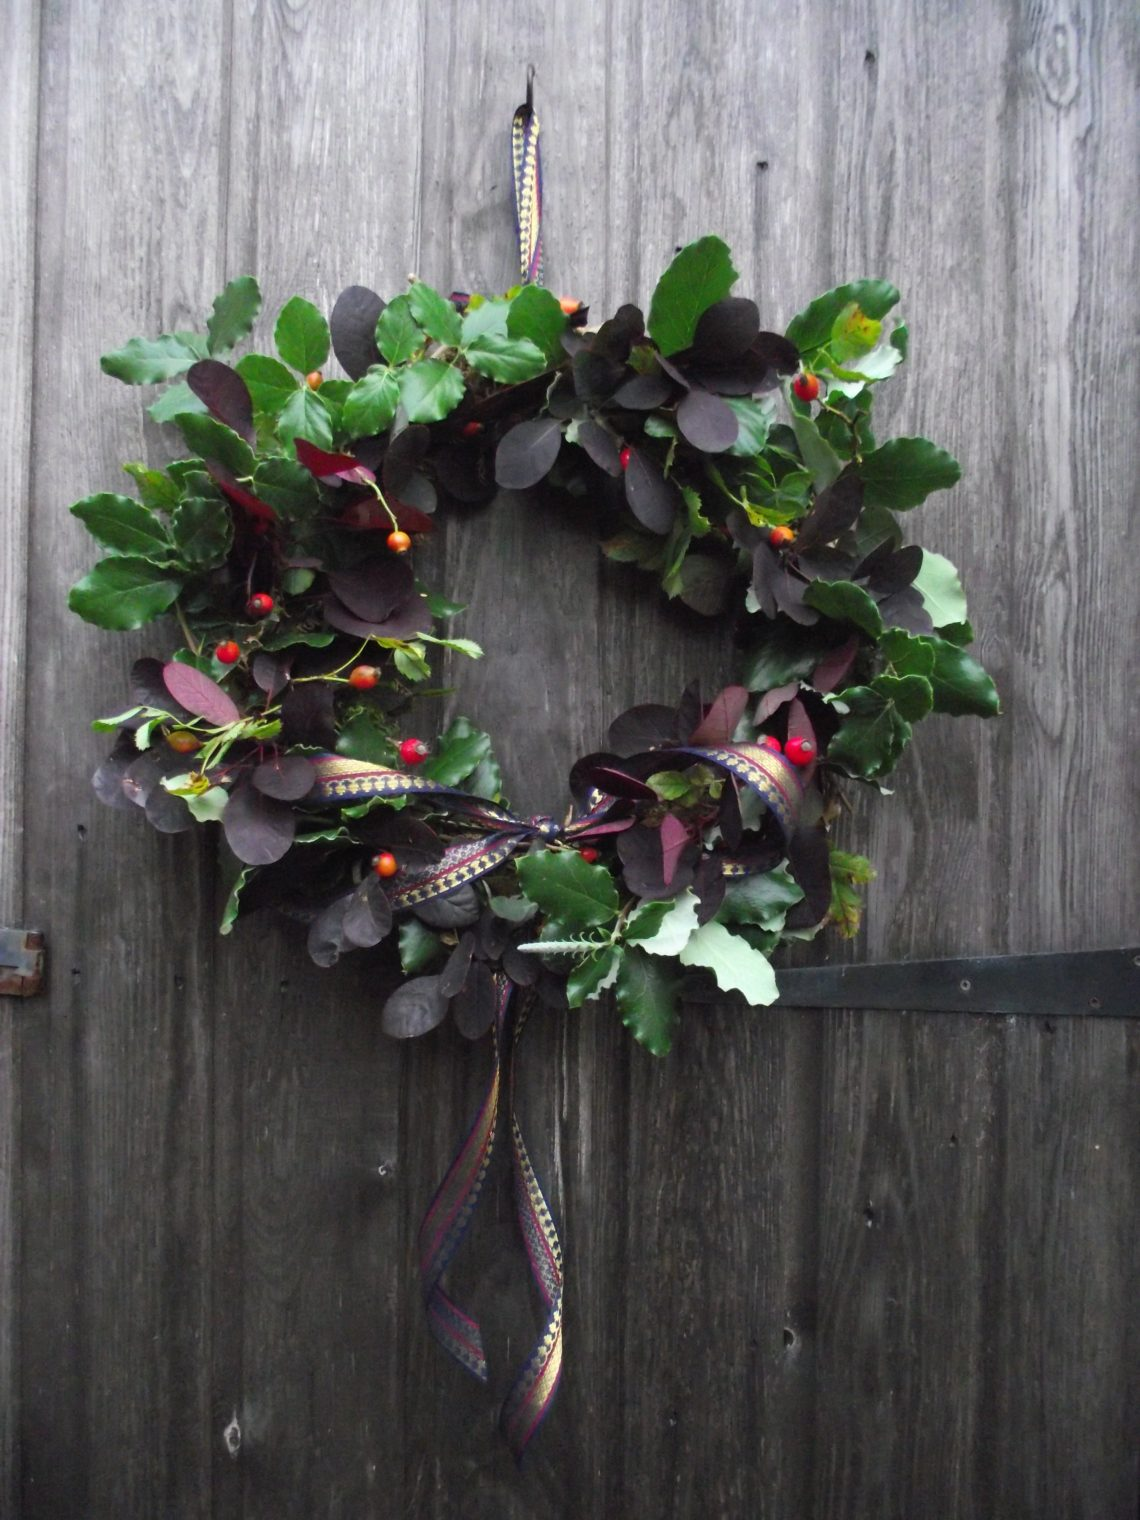 DIY wreath workshops